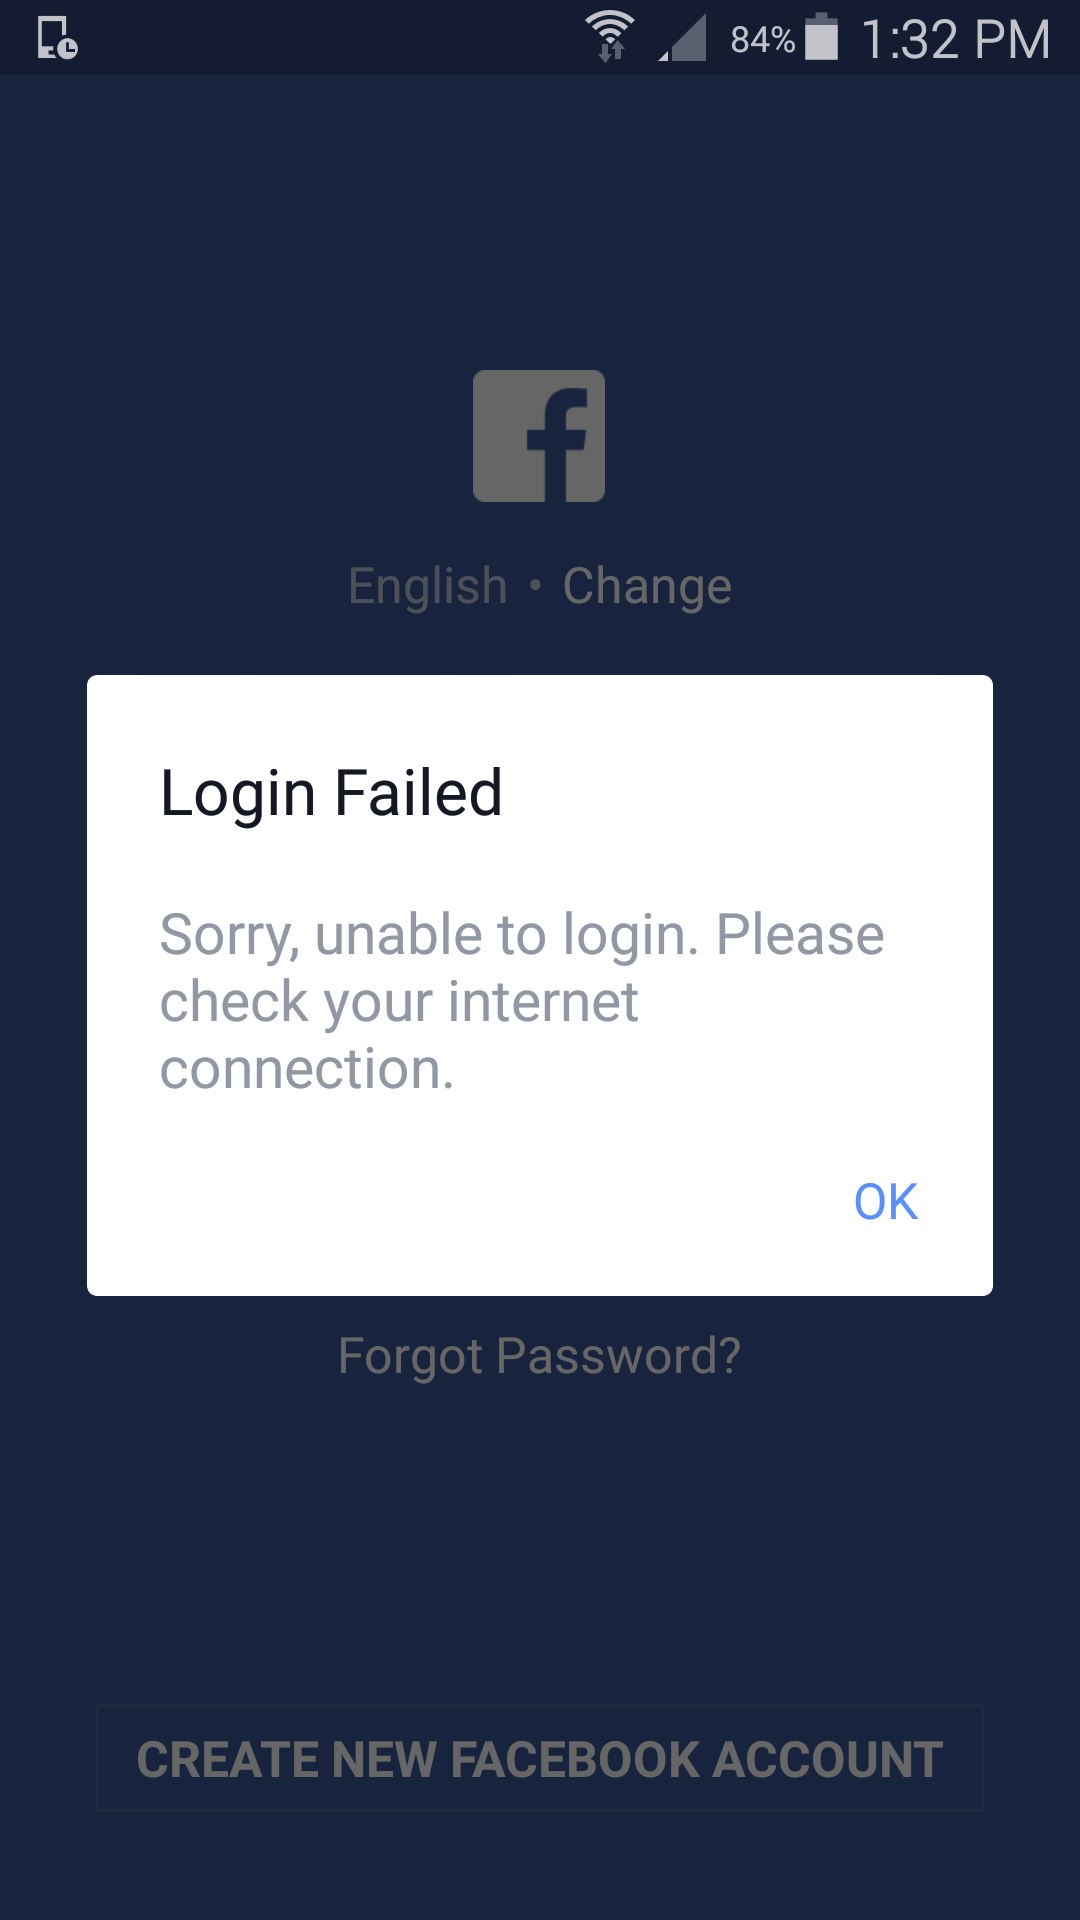 Internet works fine, but no connection to Facebook - HTC One X